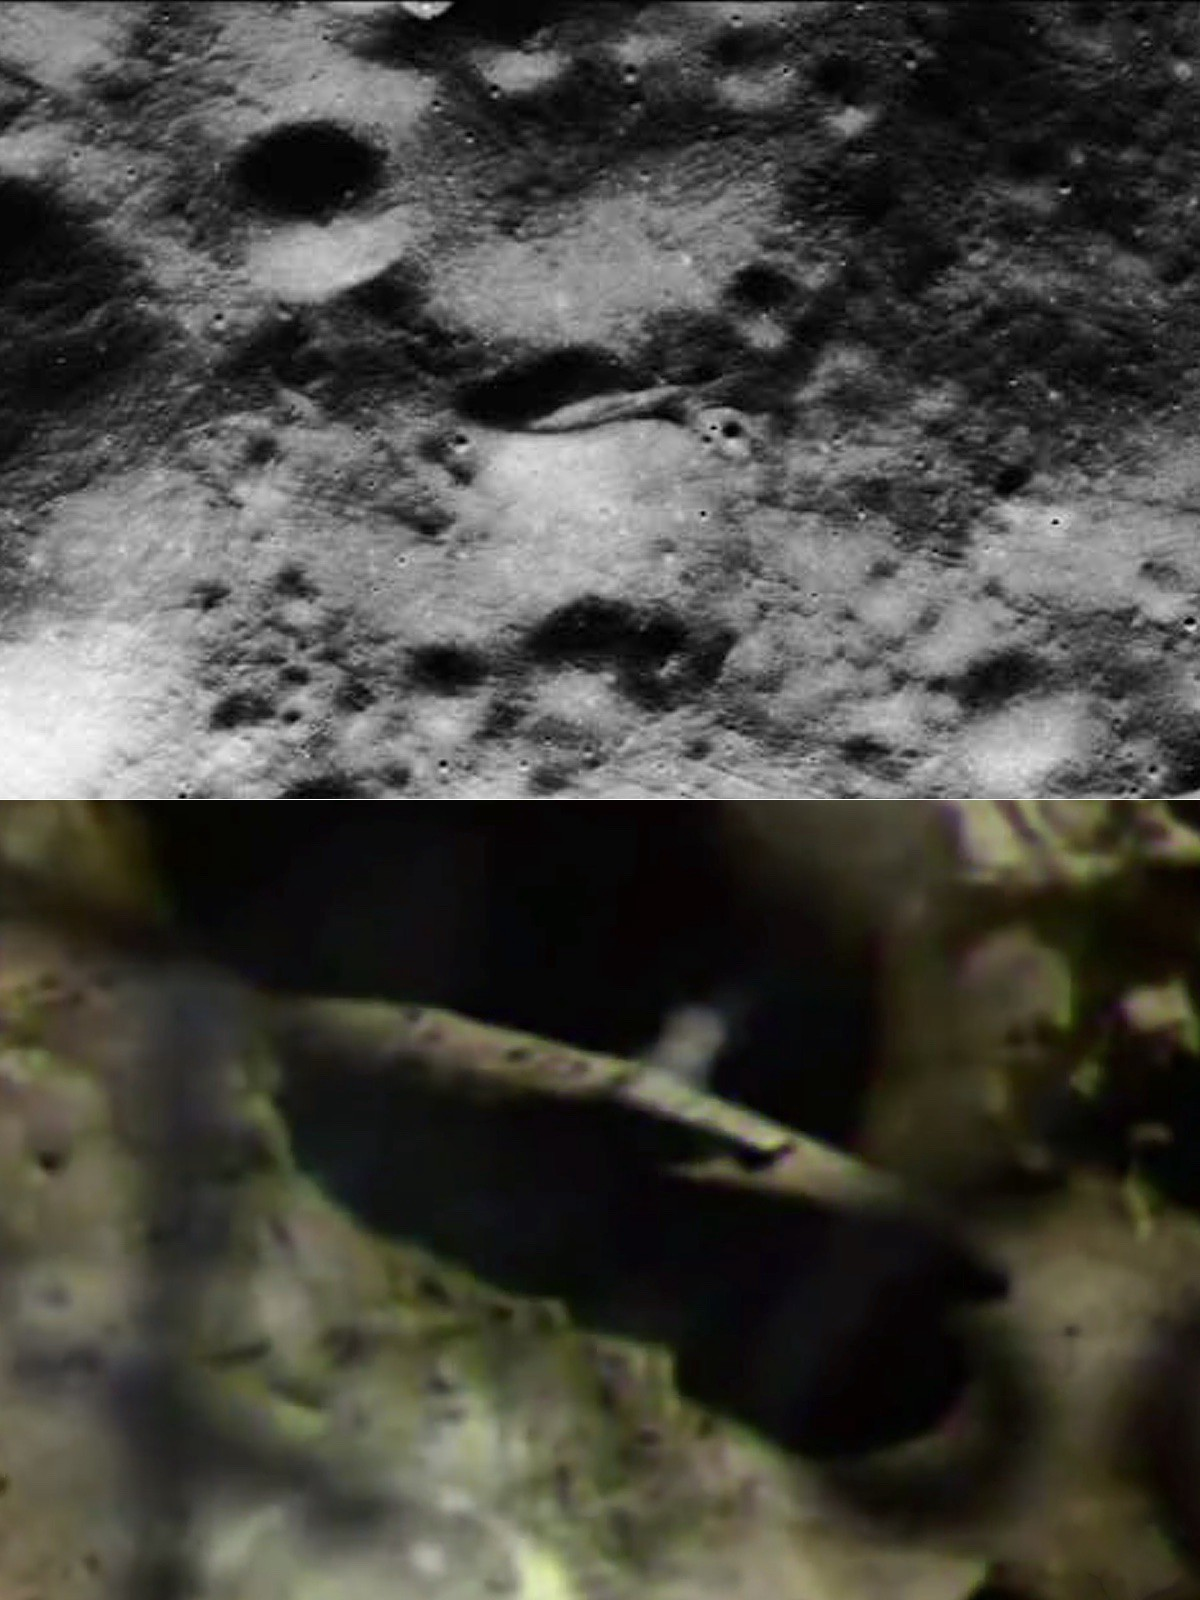 ancient aliens moon landing - photo #10